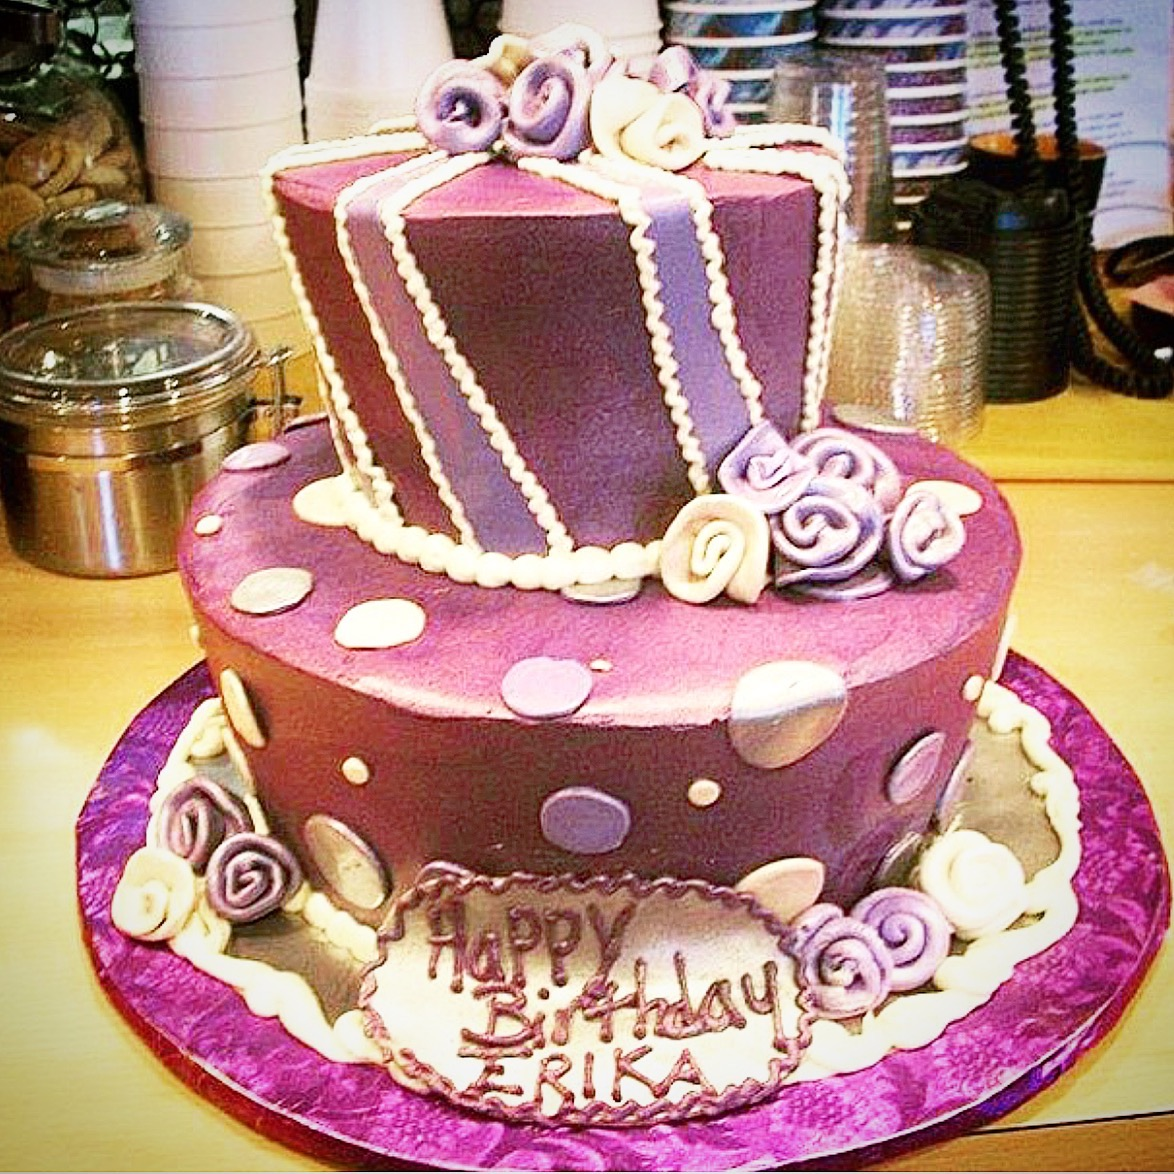 Birthday Cakes By Rustika Cafe And Bakery